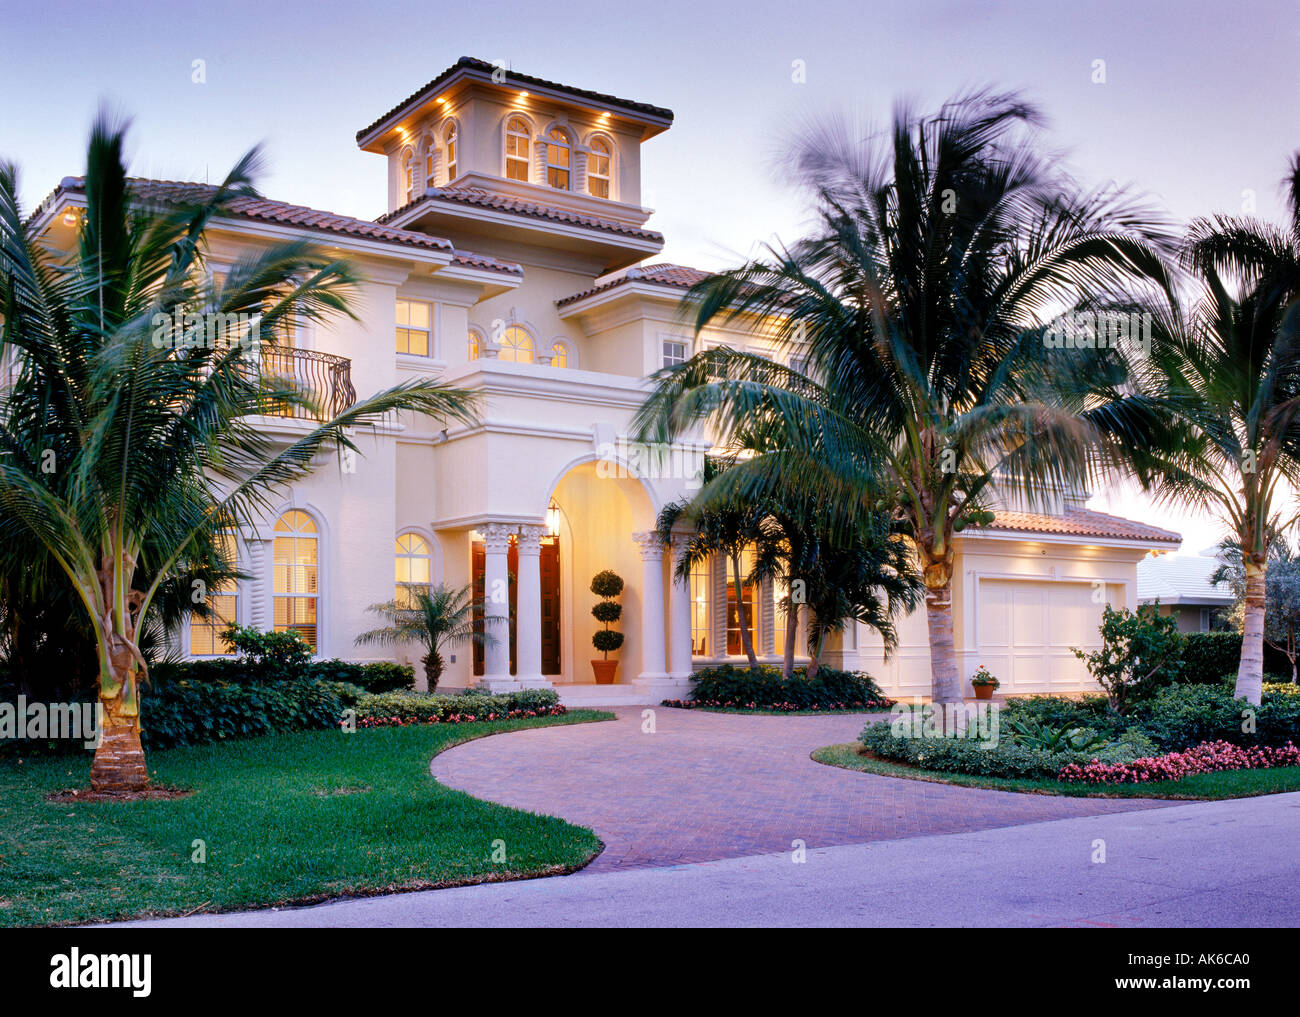 Mediterranean style home exterior at dusk stock photo for Mediterranean style modular homes